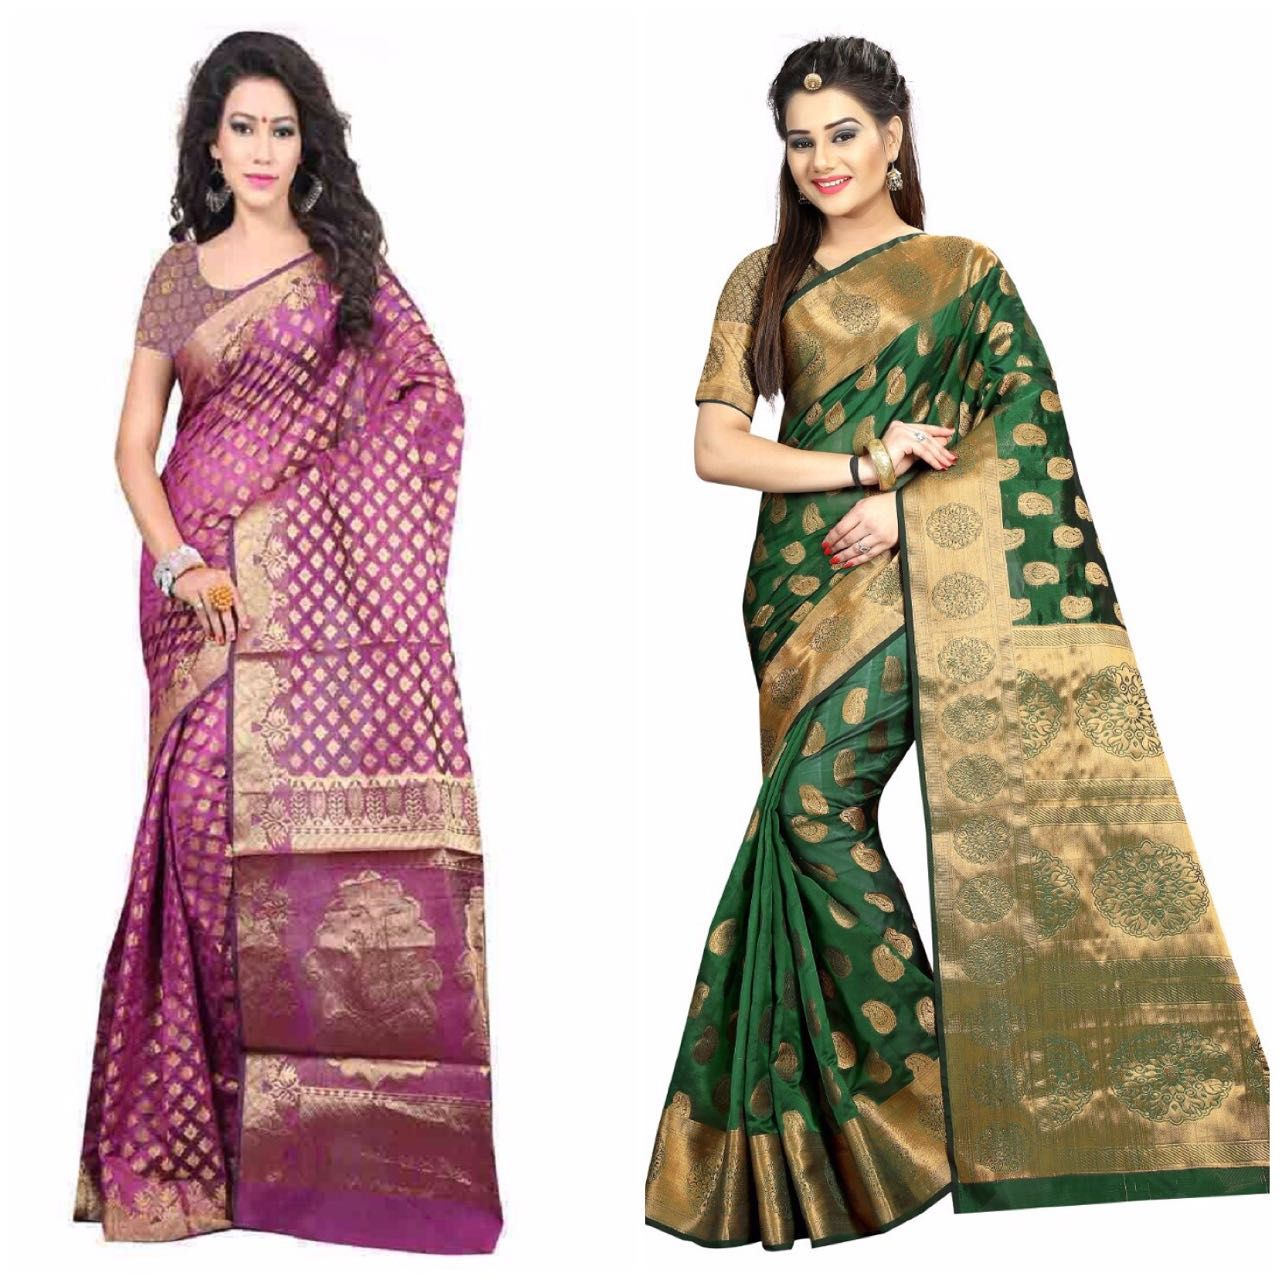 Gazal Fashions Multicoloured Banarasi Silk Saree Combos